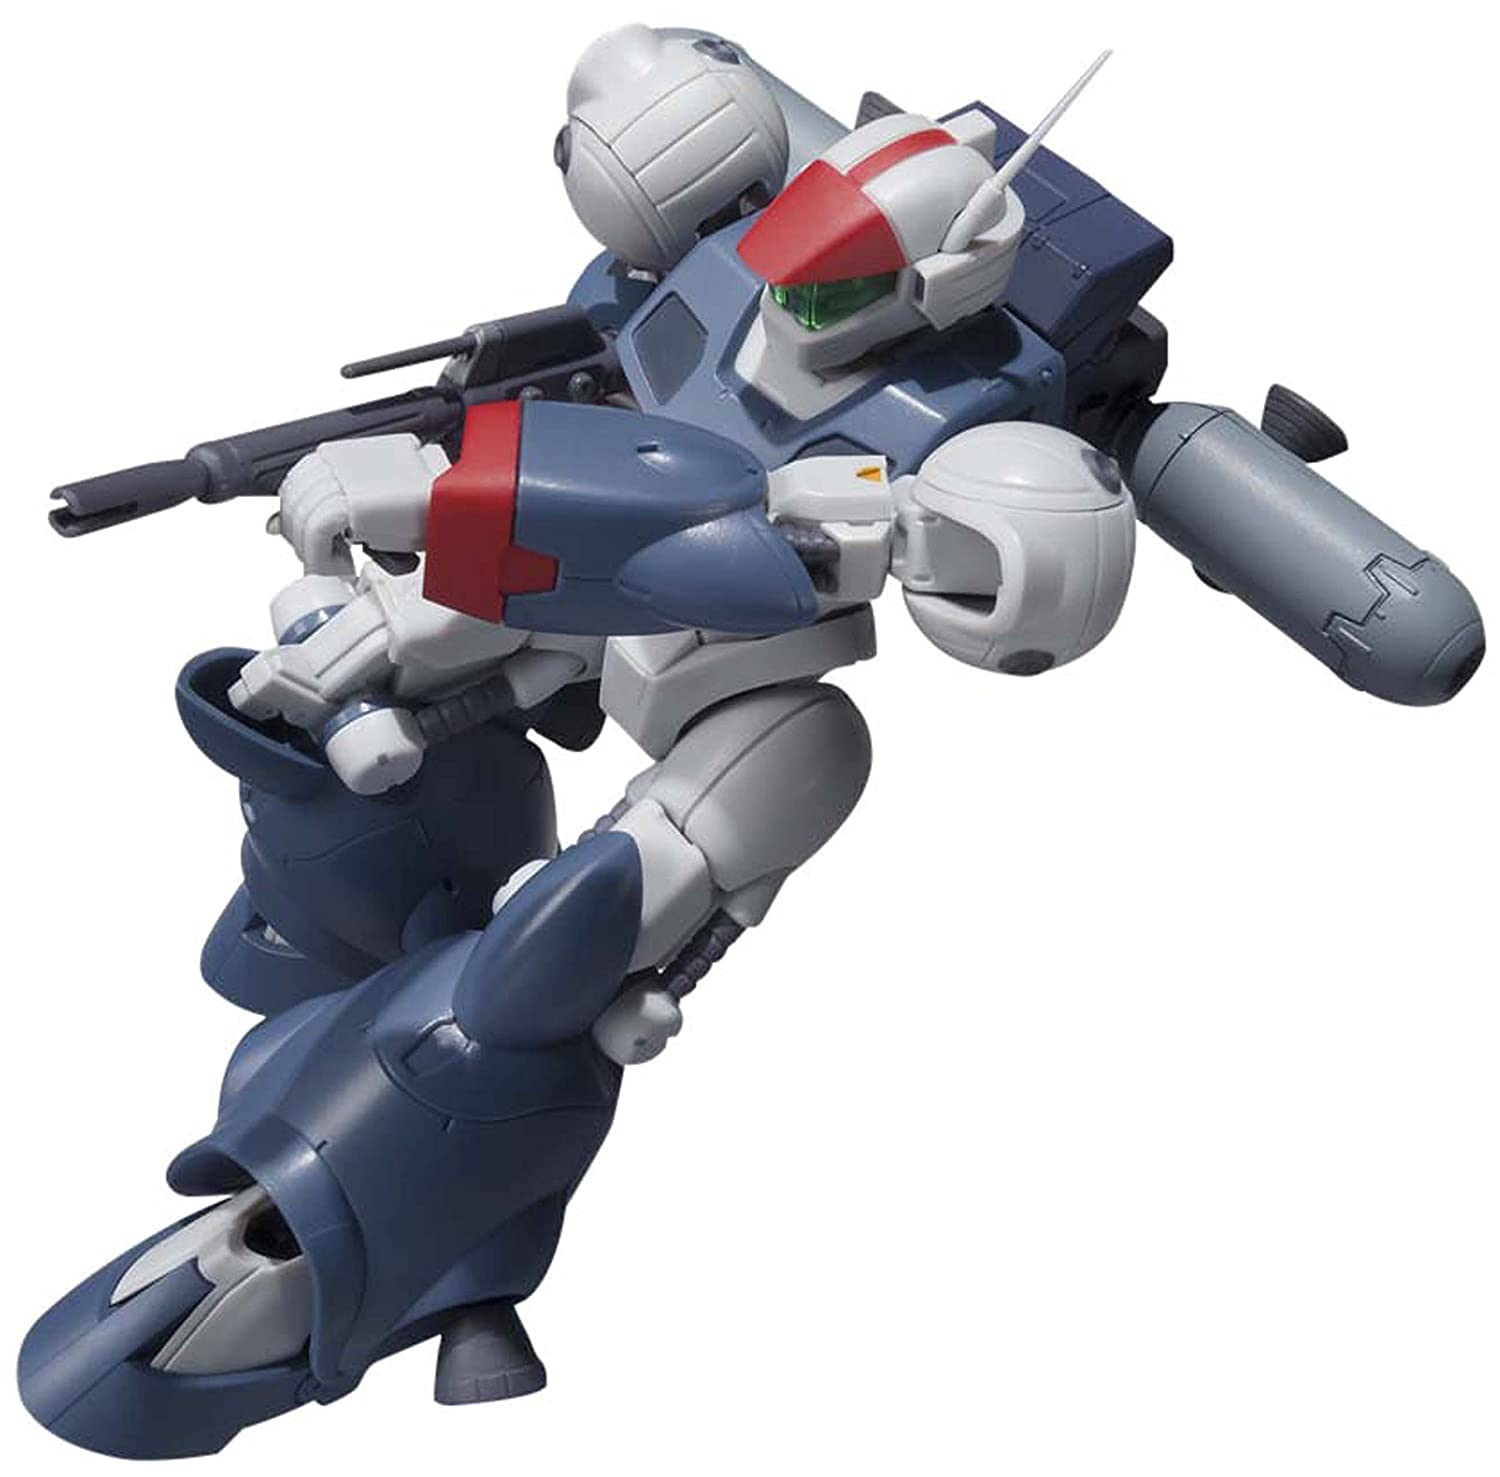 Bandai Tamashii Twin Nations Robot Spirit <Side RV> Vifam with Twin Tamashii Mover Figure from Bandai c2a4cd